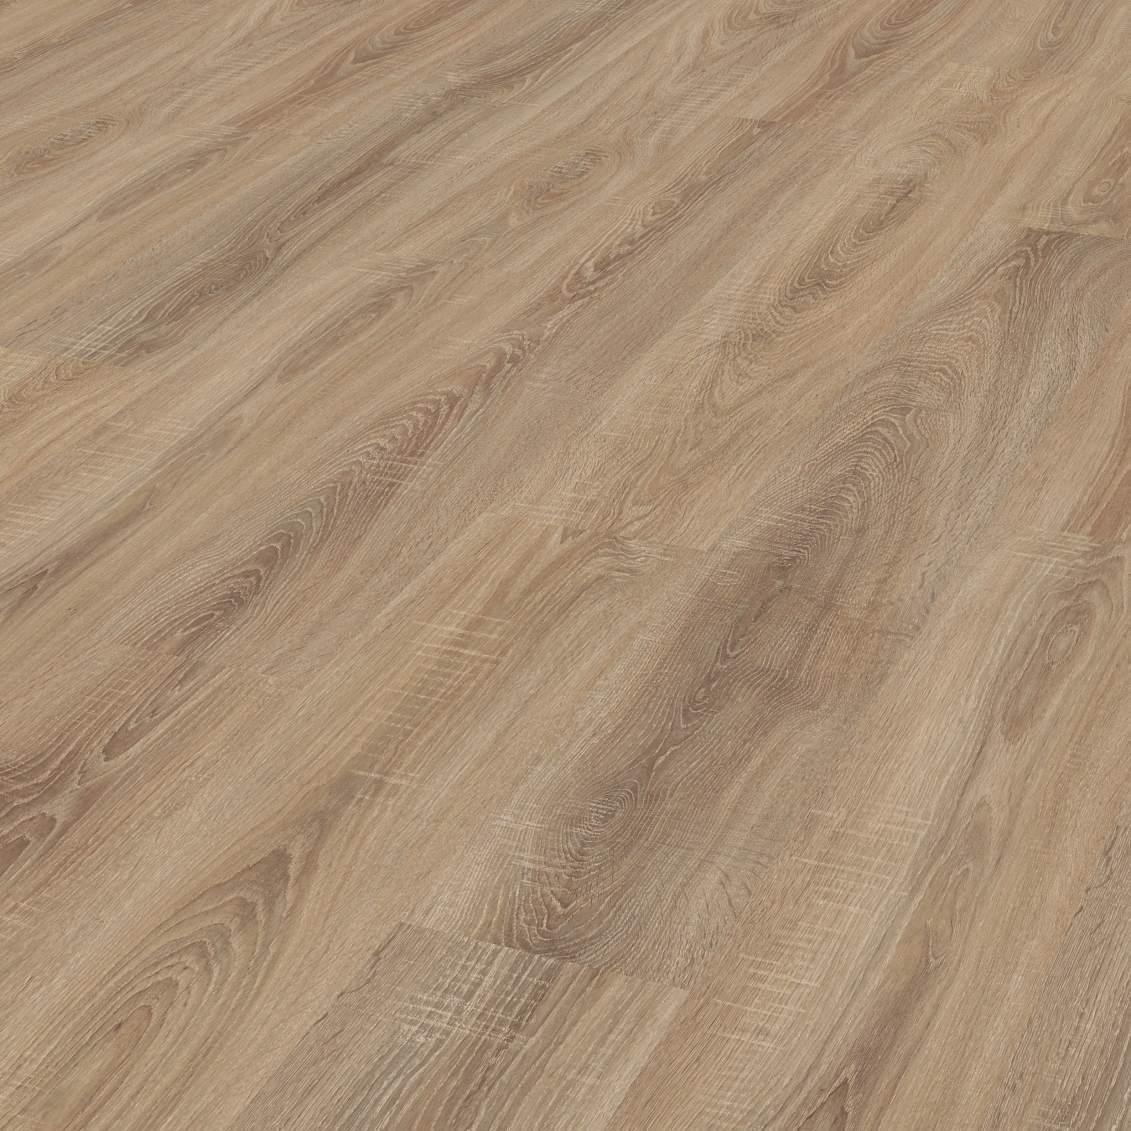 Ламинат Kaindl Classic Touch Standard Plank 37526 Дуб Rosarno